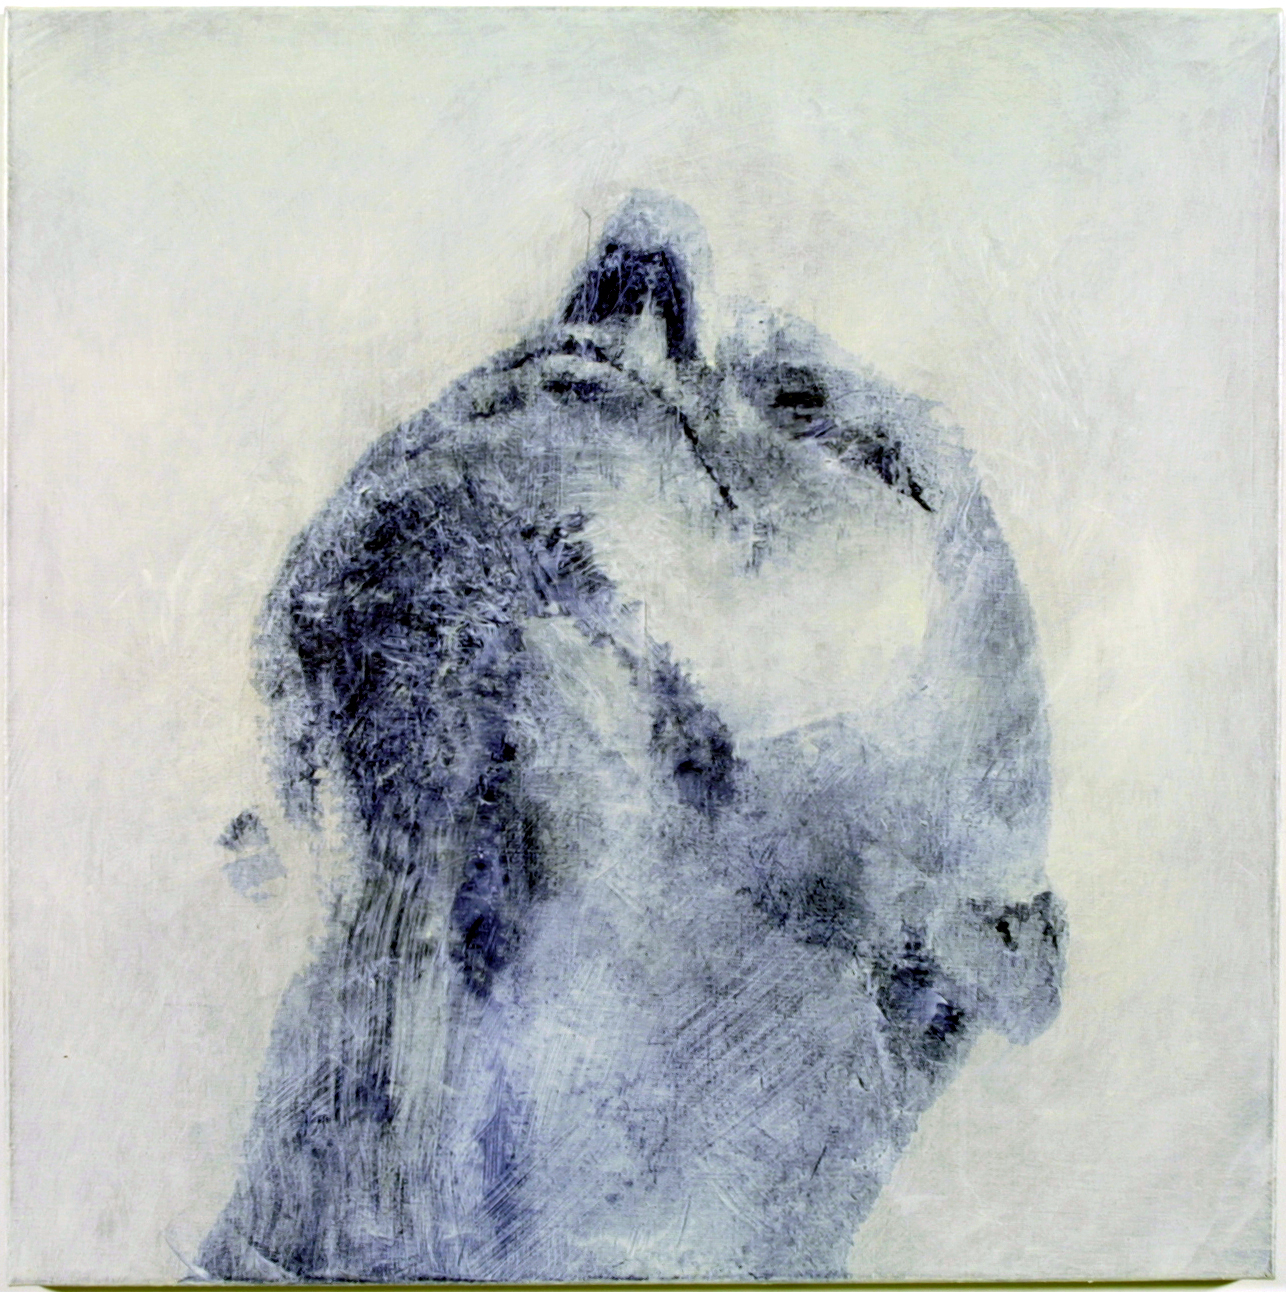 67)+Head+Self+Portrait+4,+2001+oil-wax+on+linen+76x76+cm++.jpg